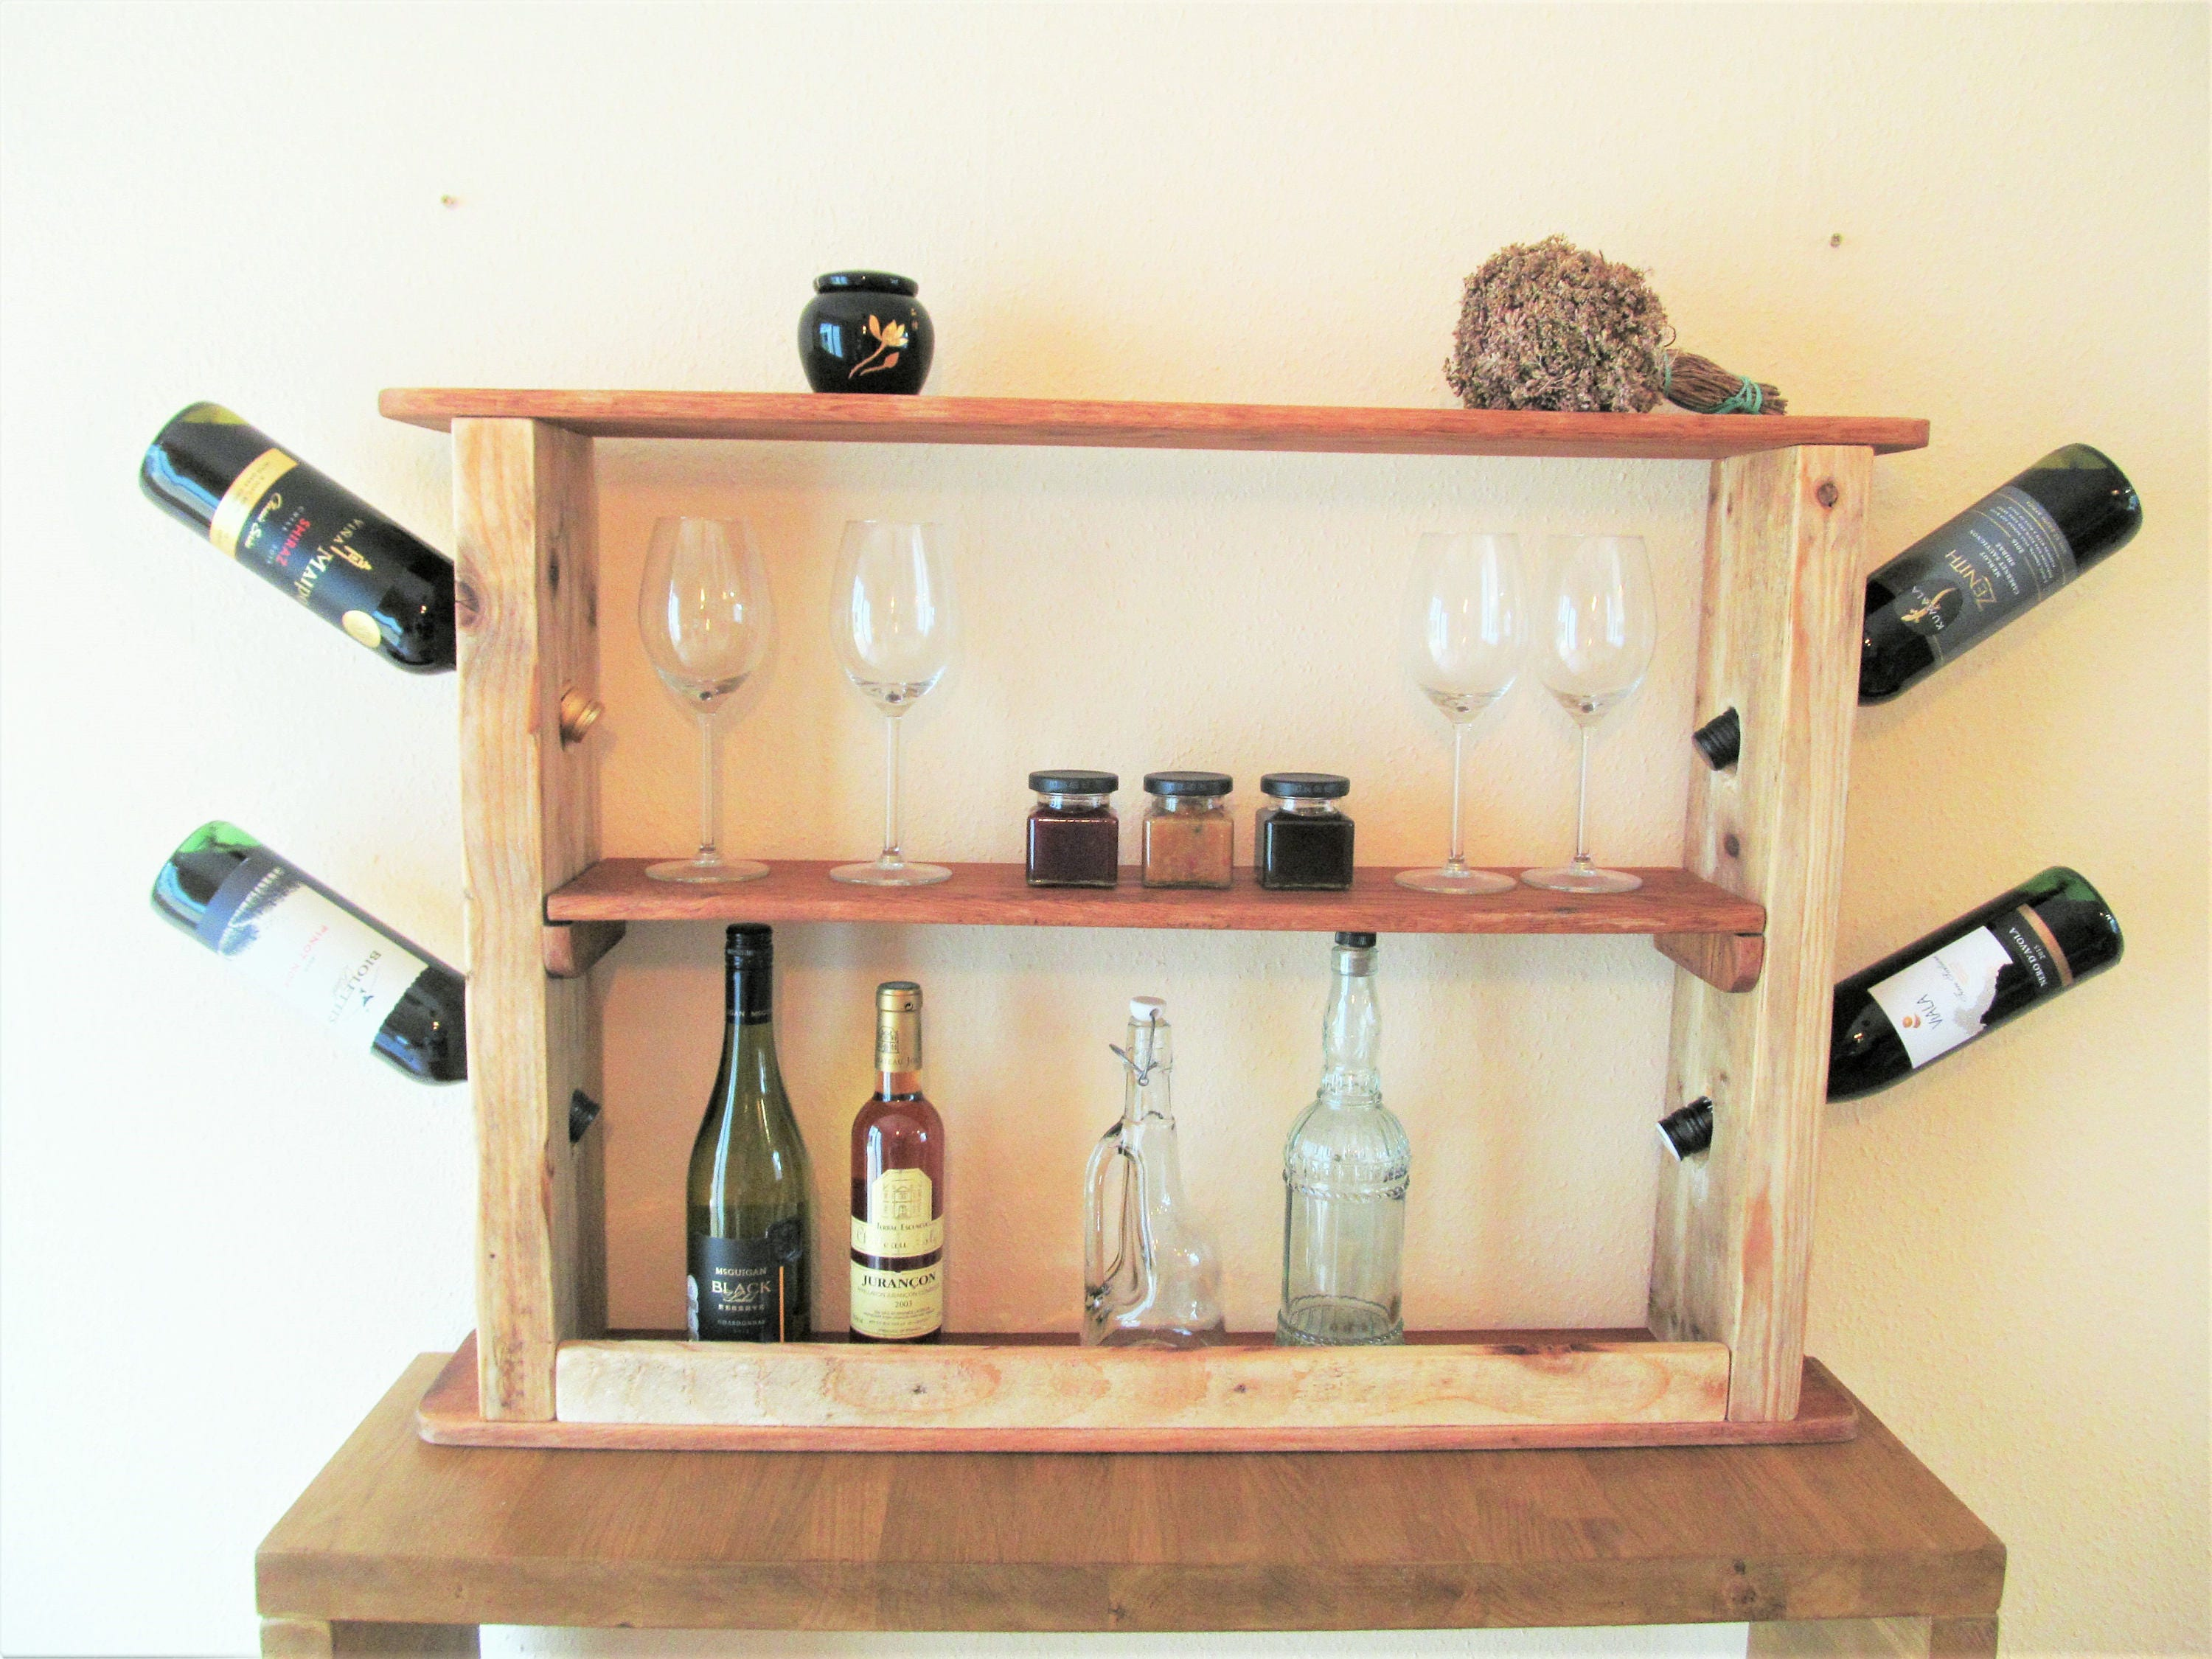 Handmade Wine Rack from reclaimed timber kitchen and dining room rustic shelving